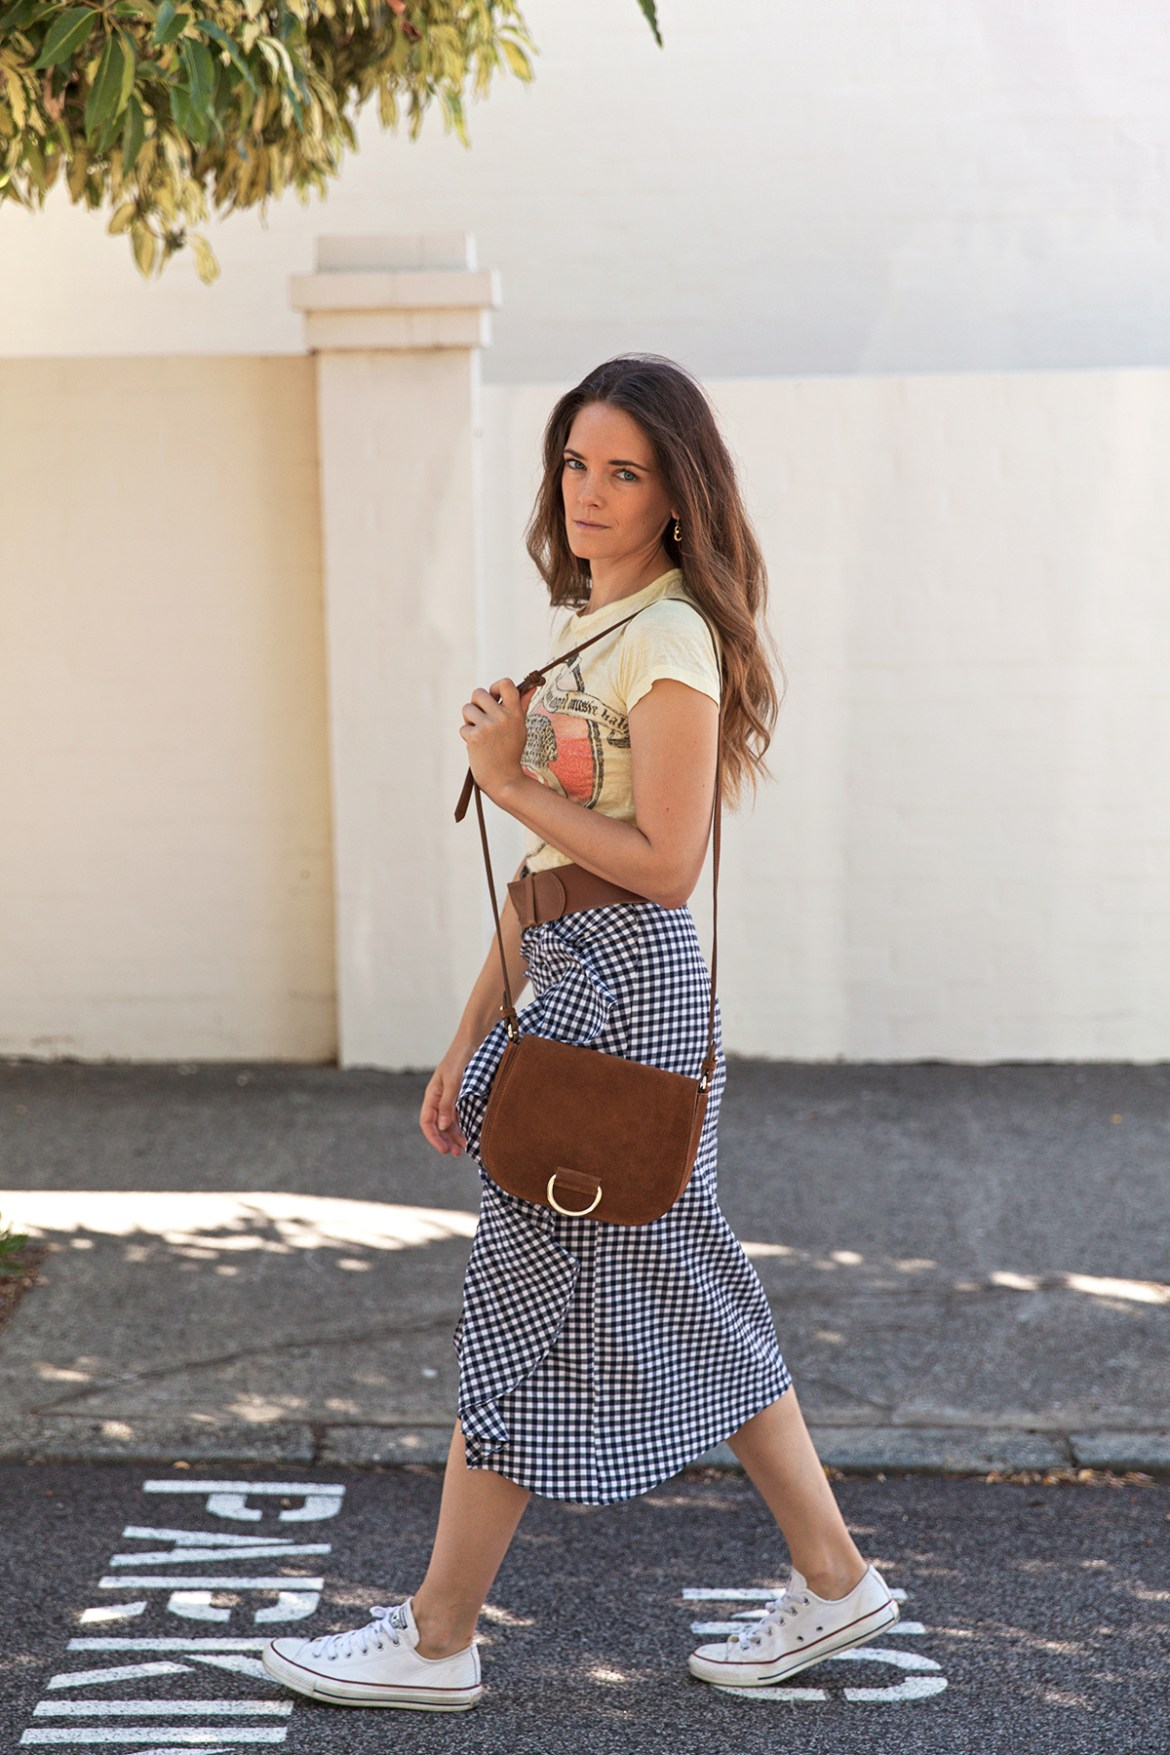 Inspiring Wit fashion blogger from Australia in Topshop gingham ruffle skirt for spring 2017 and suede Little Liffner bag street style